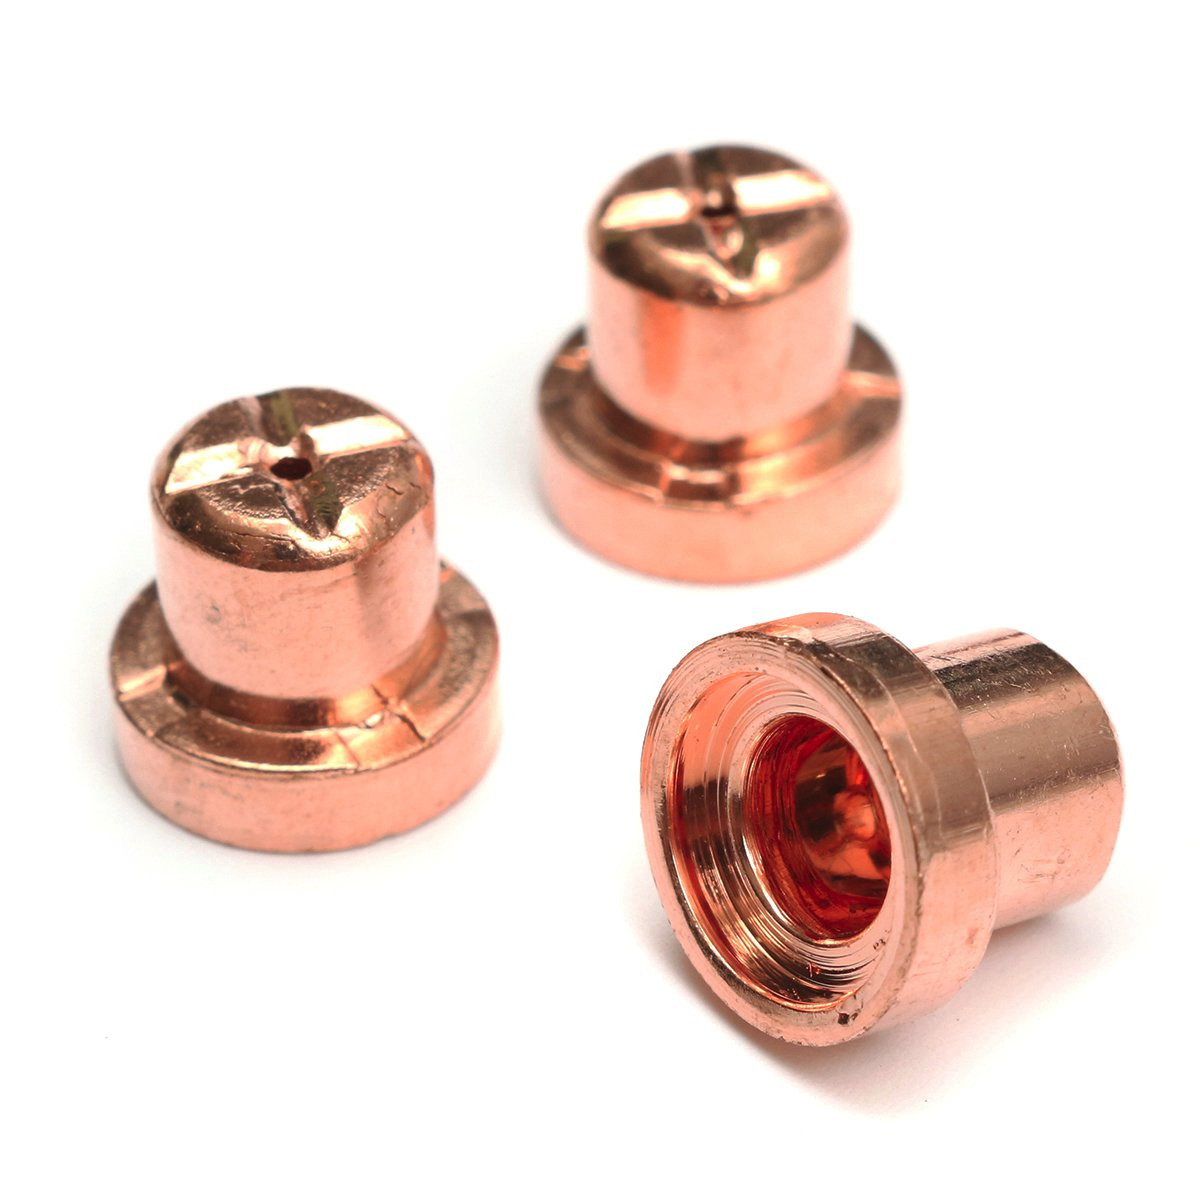 210x Air Plasma Cutter Consumables Electrode Tip Kit For Torch PT-31 LG-40